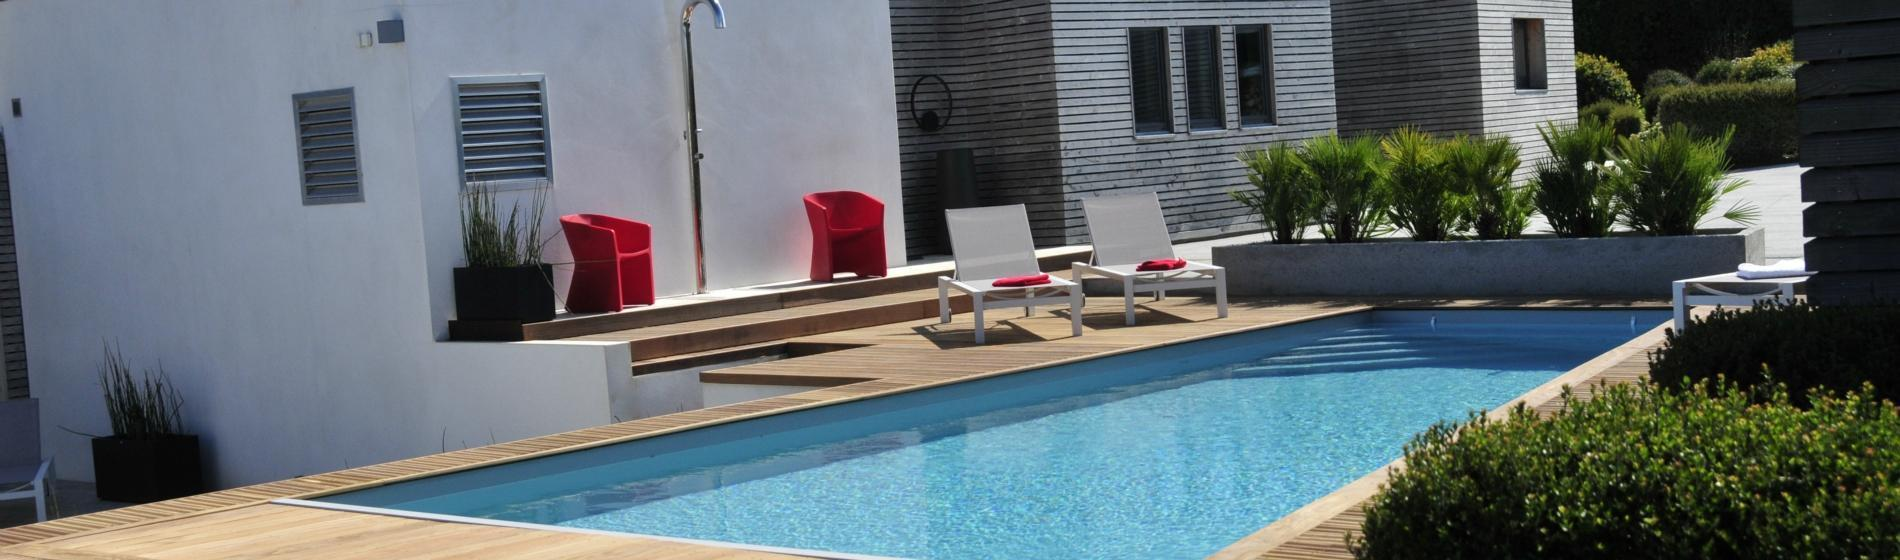 ... Maison Lkh Design; Piscine1; Location Design Bretagne. ...